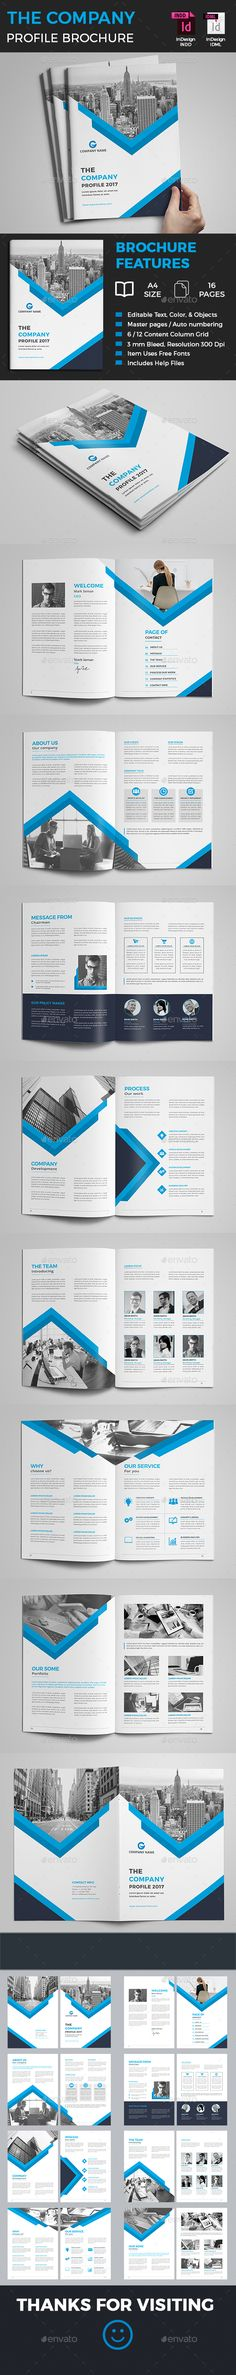 Company Profile Brochure - Corporate Brochures Company Profile Brochure Template that is super simple to edit and customize with your own details! Simply add your own images and text, I hope you like it. BROCHURE FEATURES: Page 16 Size: A4 (210×297mm) 6 / 12 Content Column Grid Bleed: 3mm Color: CMYK Resolution: 300 Dpi print Ready Format Open with: Adobe Indesign CS4, CS5, CS6 & CC Only Free Fonts Used, download link attached in help file